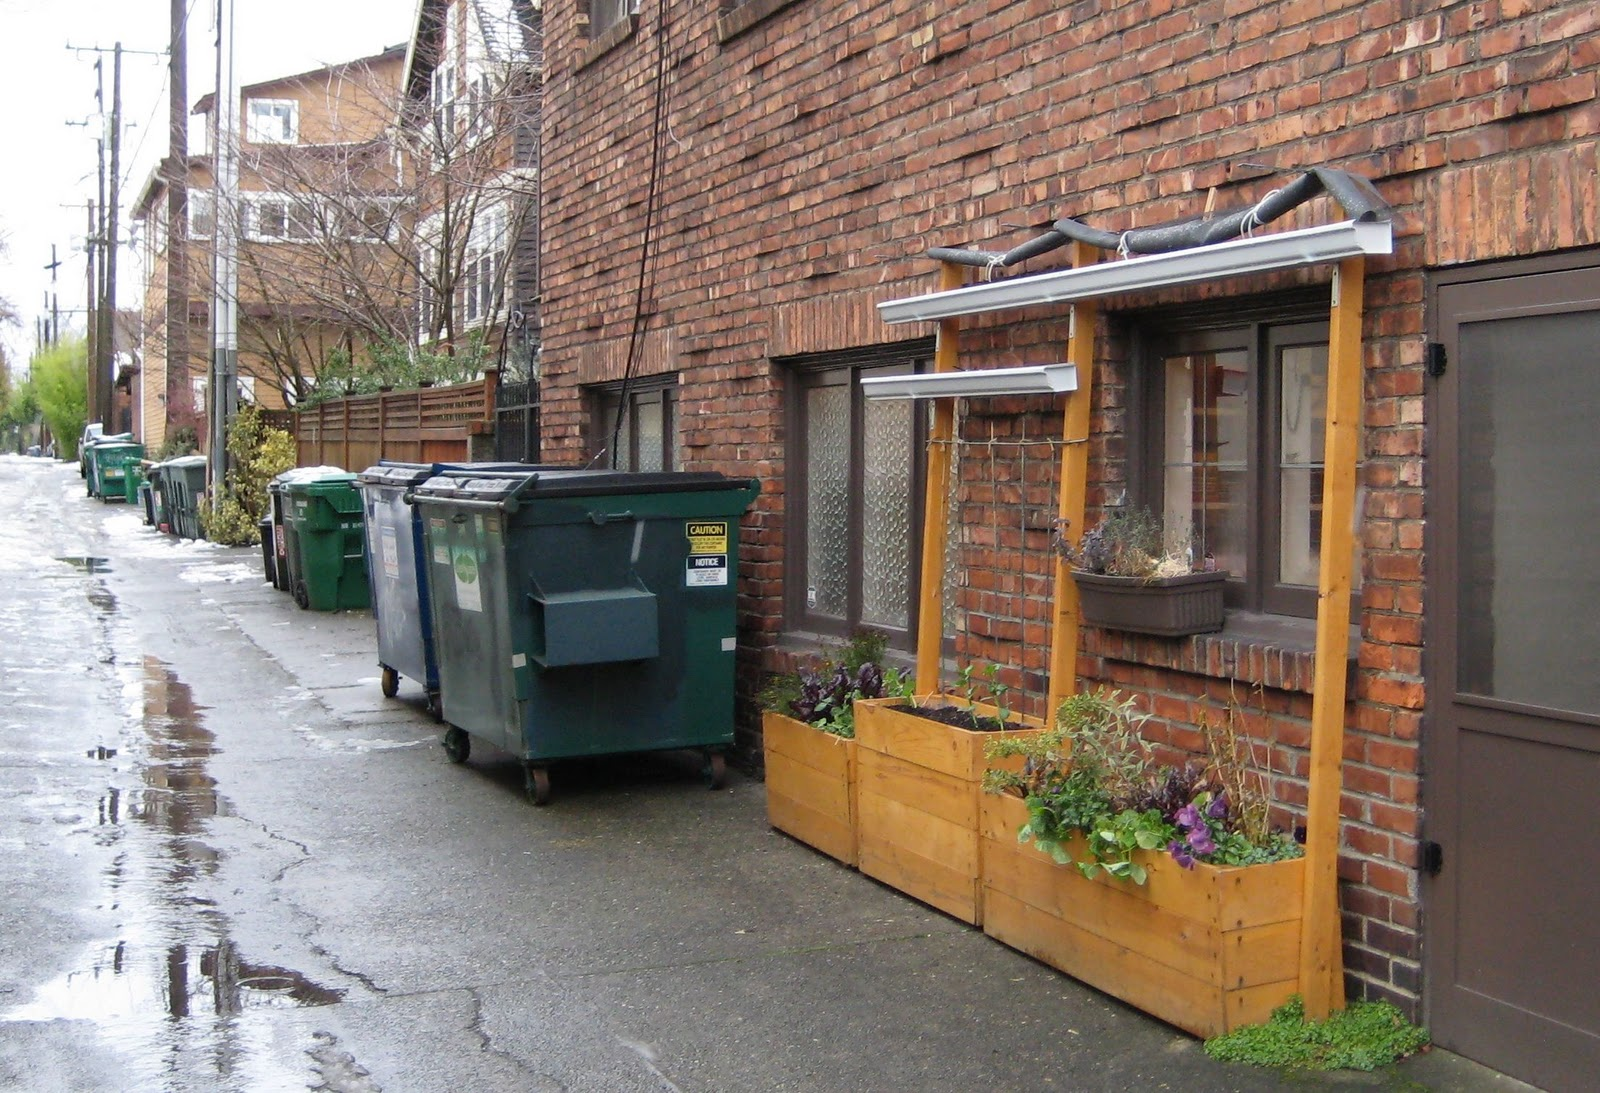 Urban photo diary diy urbanism diy edible urbanism tucked among alley dumpsters this creative one foot wide multi level design invites growing in some of the most urban constraints location solutioingenieria Choice Image